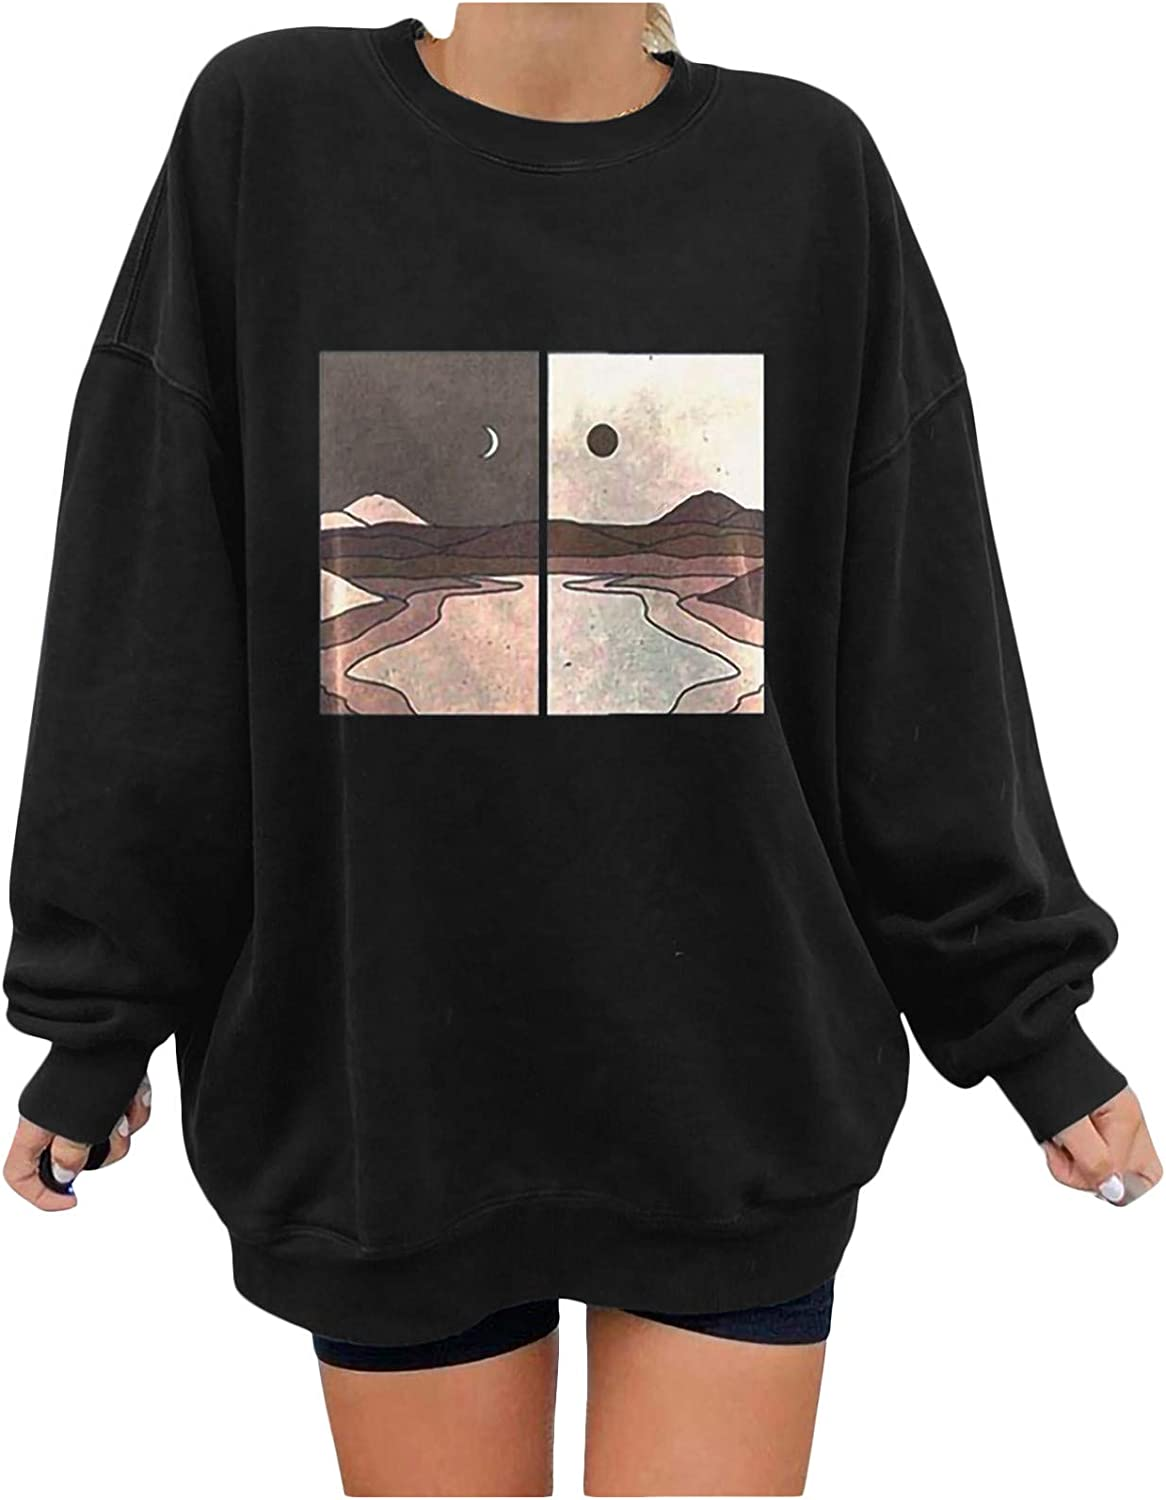 Oversized Sweatshirts for Women Vintage Hooded Sweatshirts Landscape Printed Long Sleeve Casual Pullover Tops